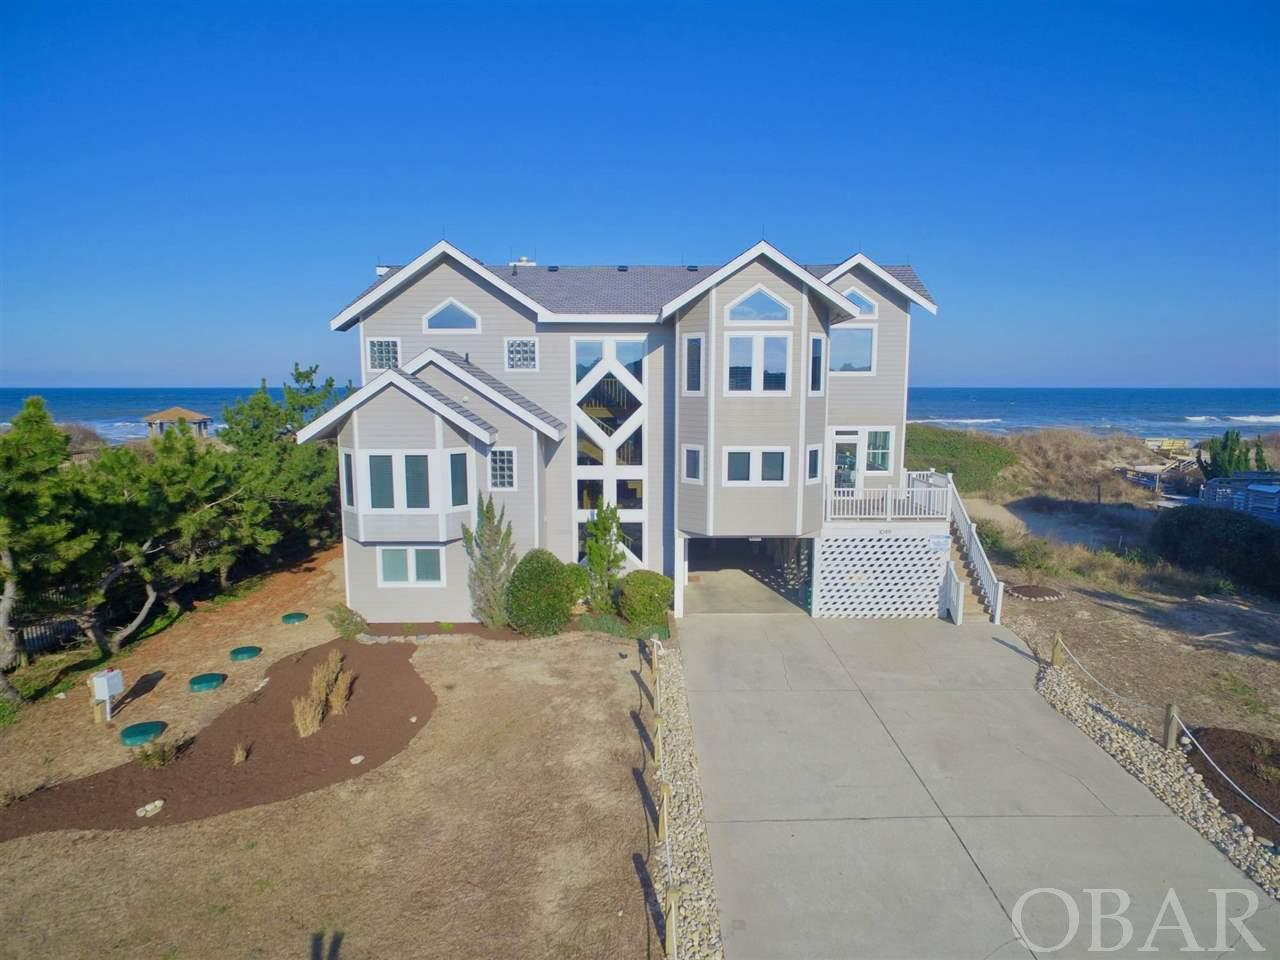 1049 Lighthouse Drive,Corolla,NC 27927,7 Bedrooms Bedrooms,7 BathroomsBathrooms,Residential,Lighthouse Drive,101613